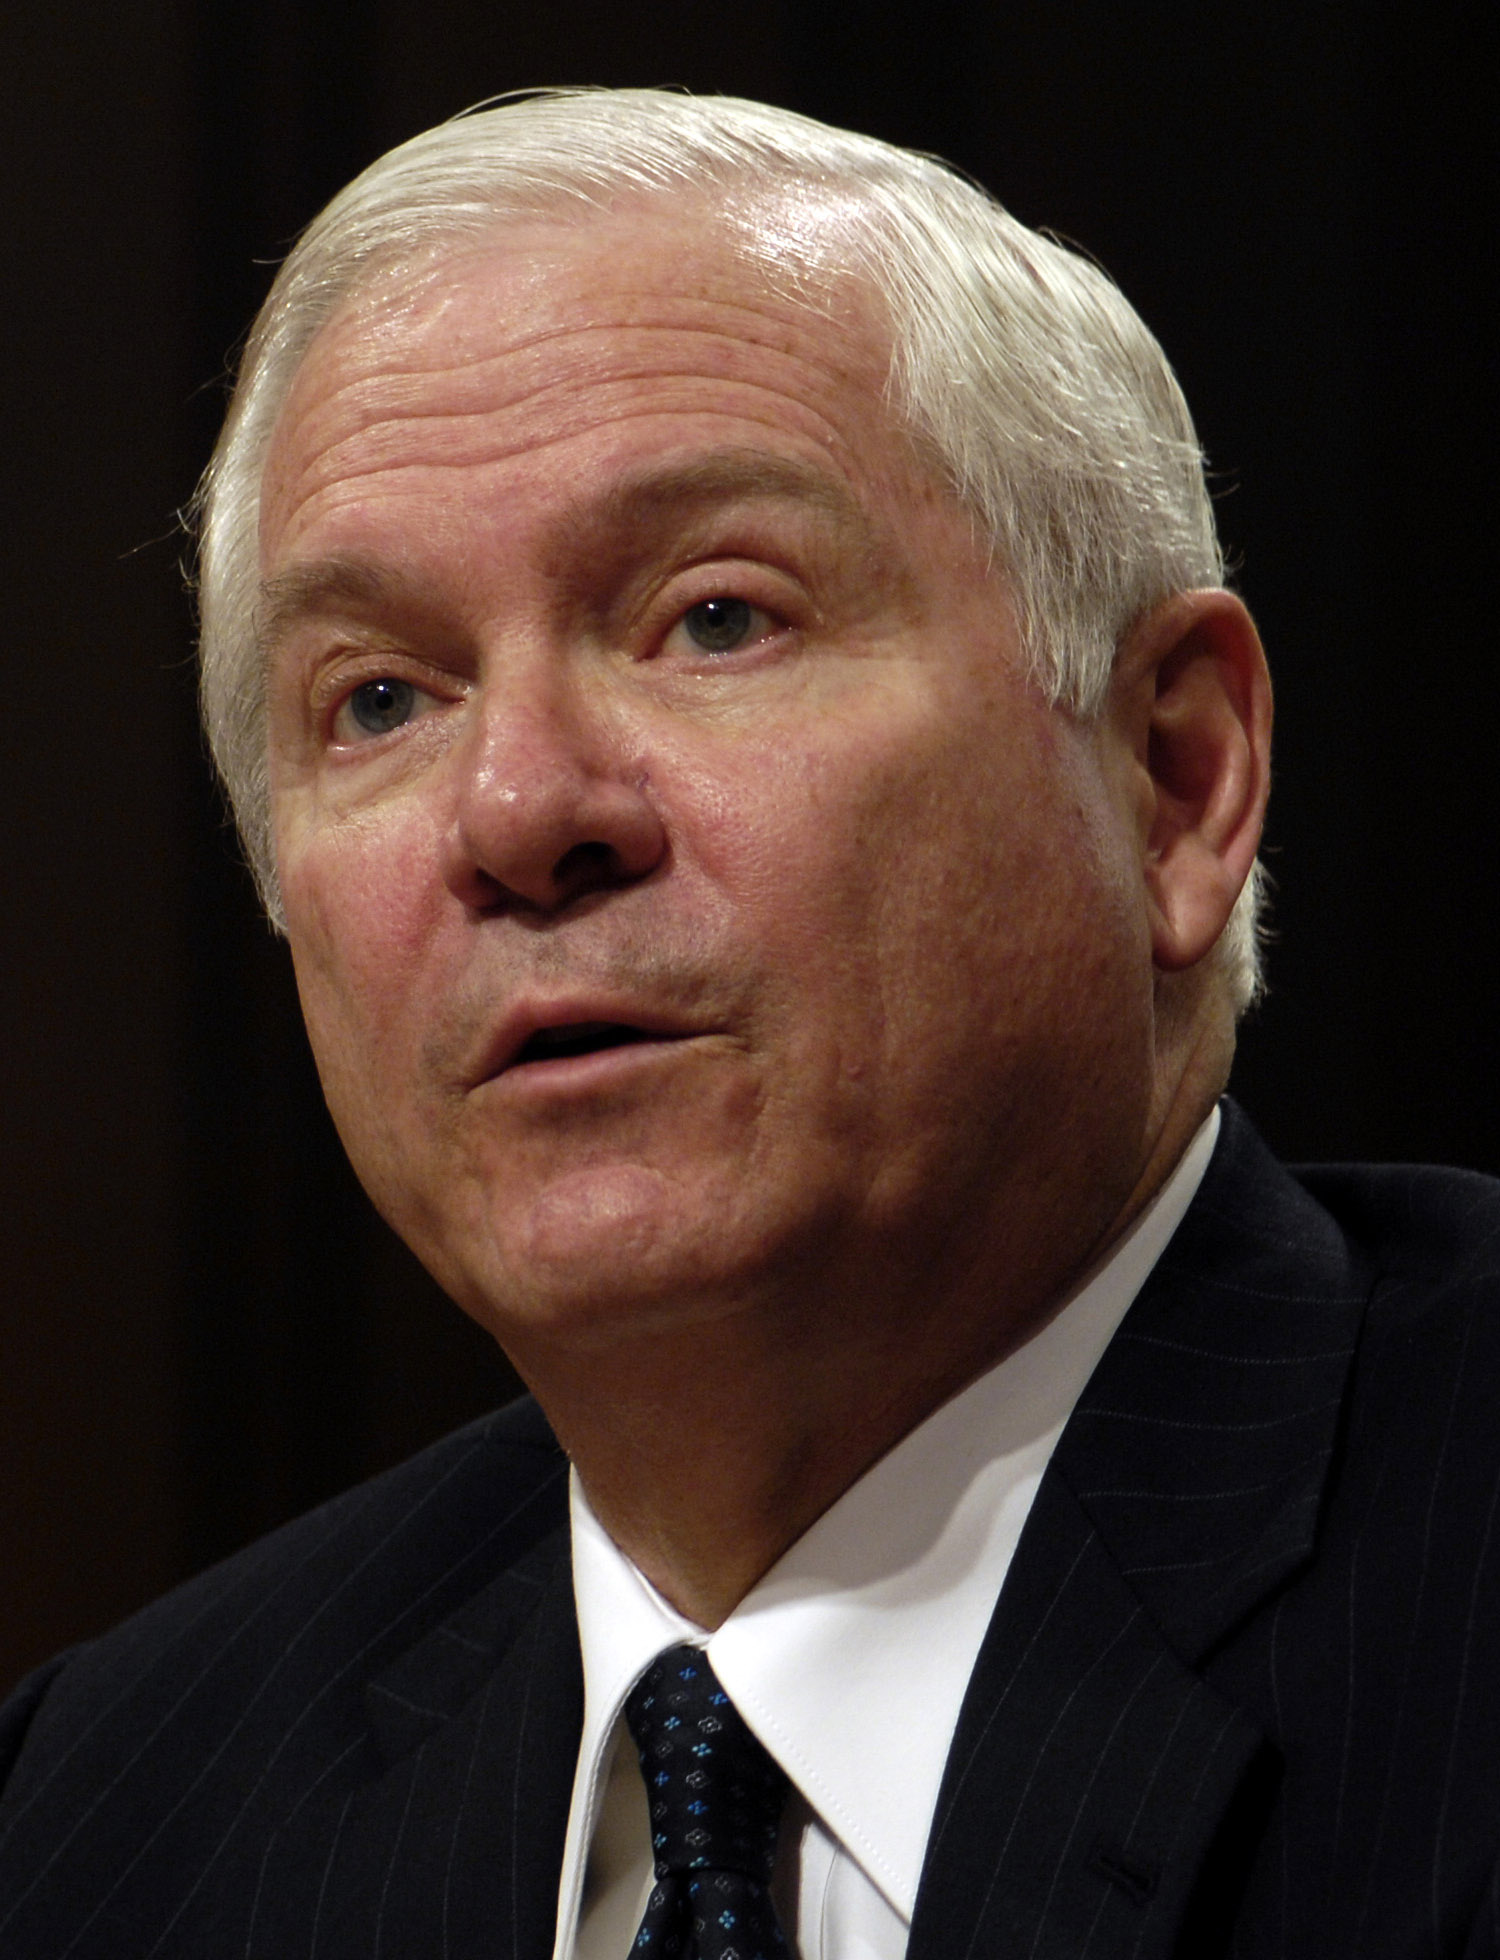 A Boston Globe article reveals that Defense Secretary Gates will be pushing Congress to cut certain weapons programs. The report comes after it was announced Gates would skip a NATO summit to focus on the defense budget.